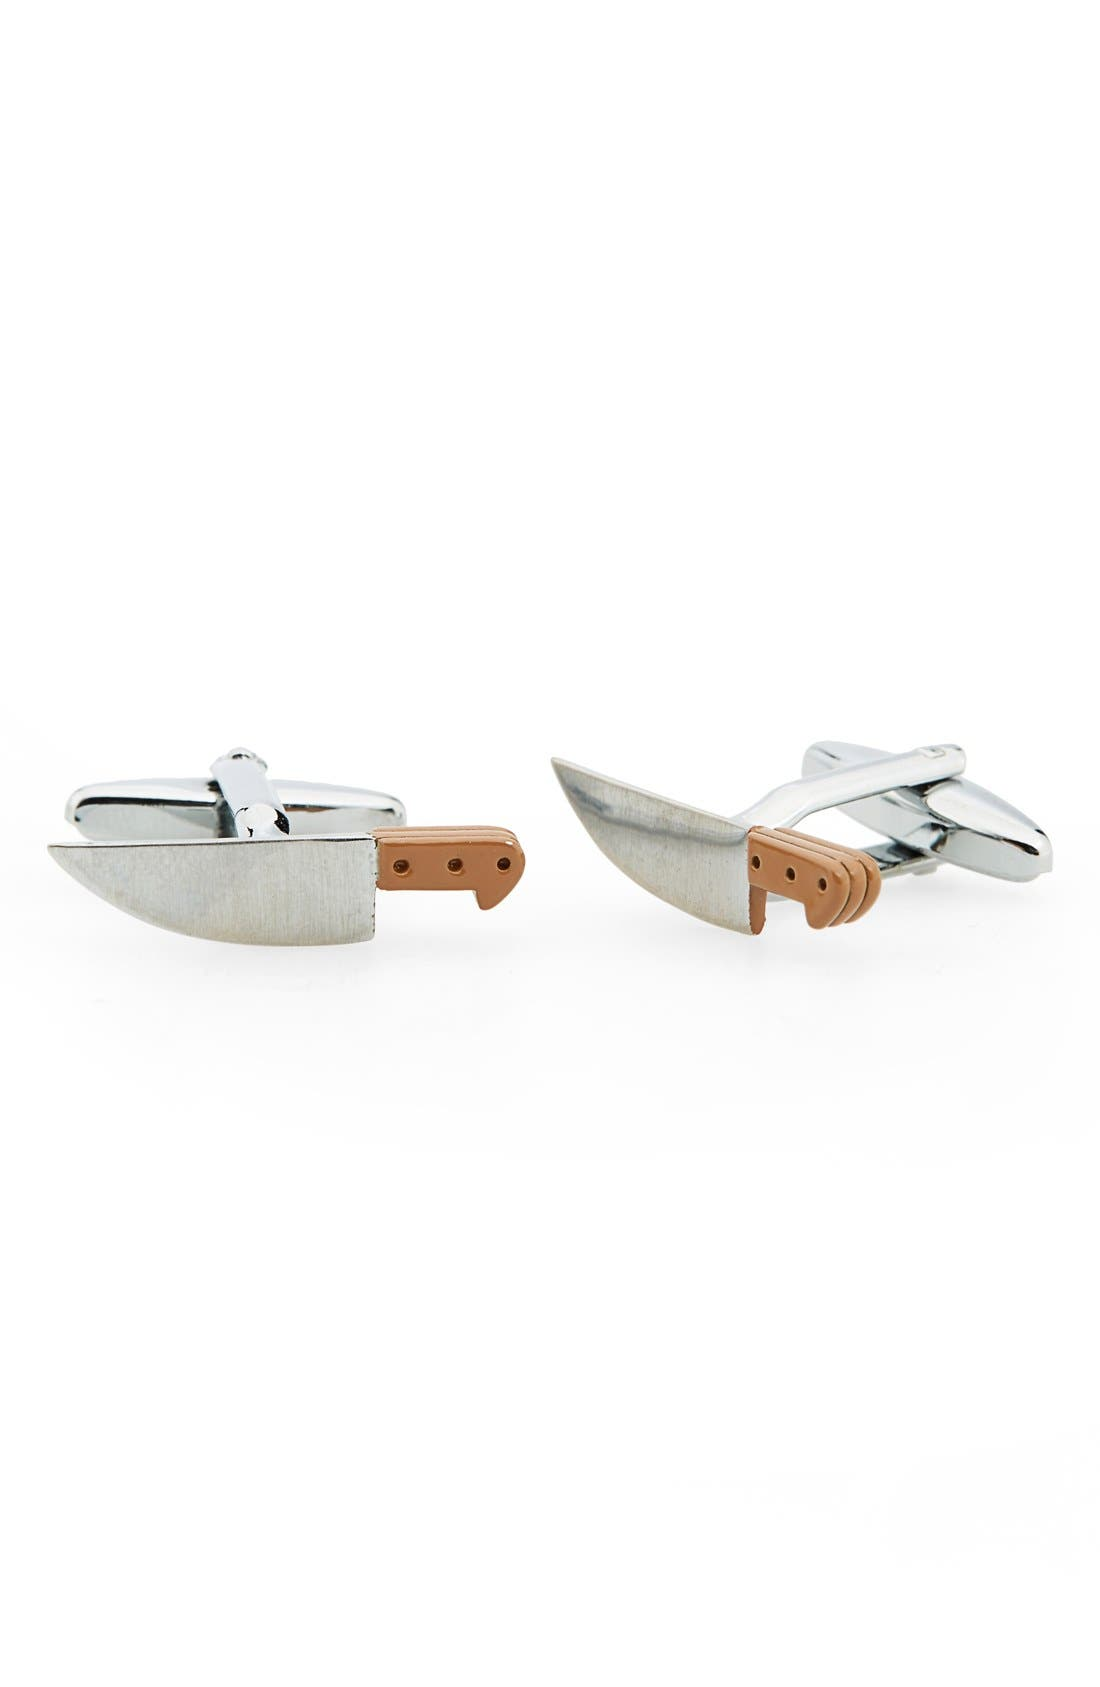 Alternate Image 1 Selected - LINK UP 'Knife' Cuff Links